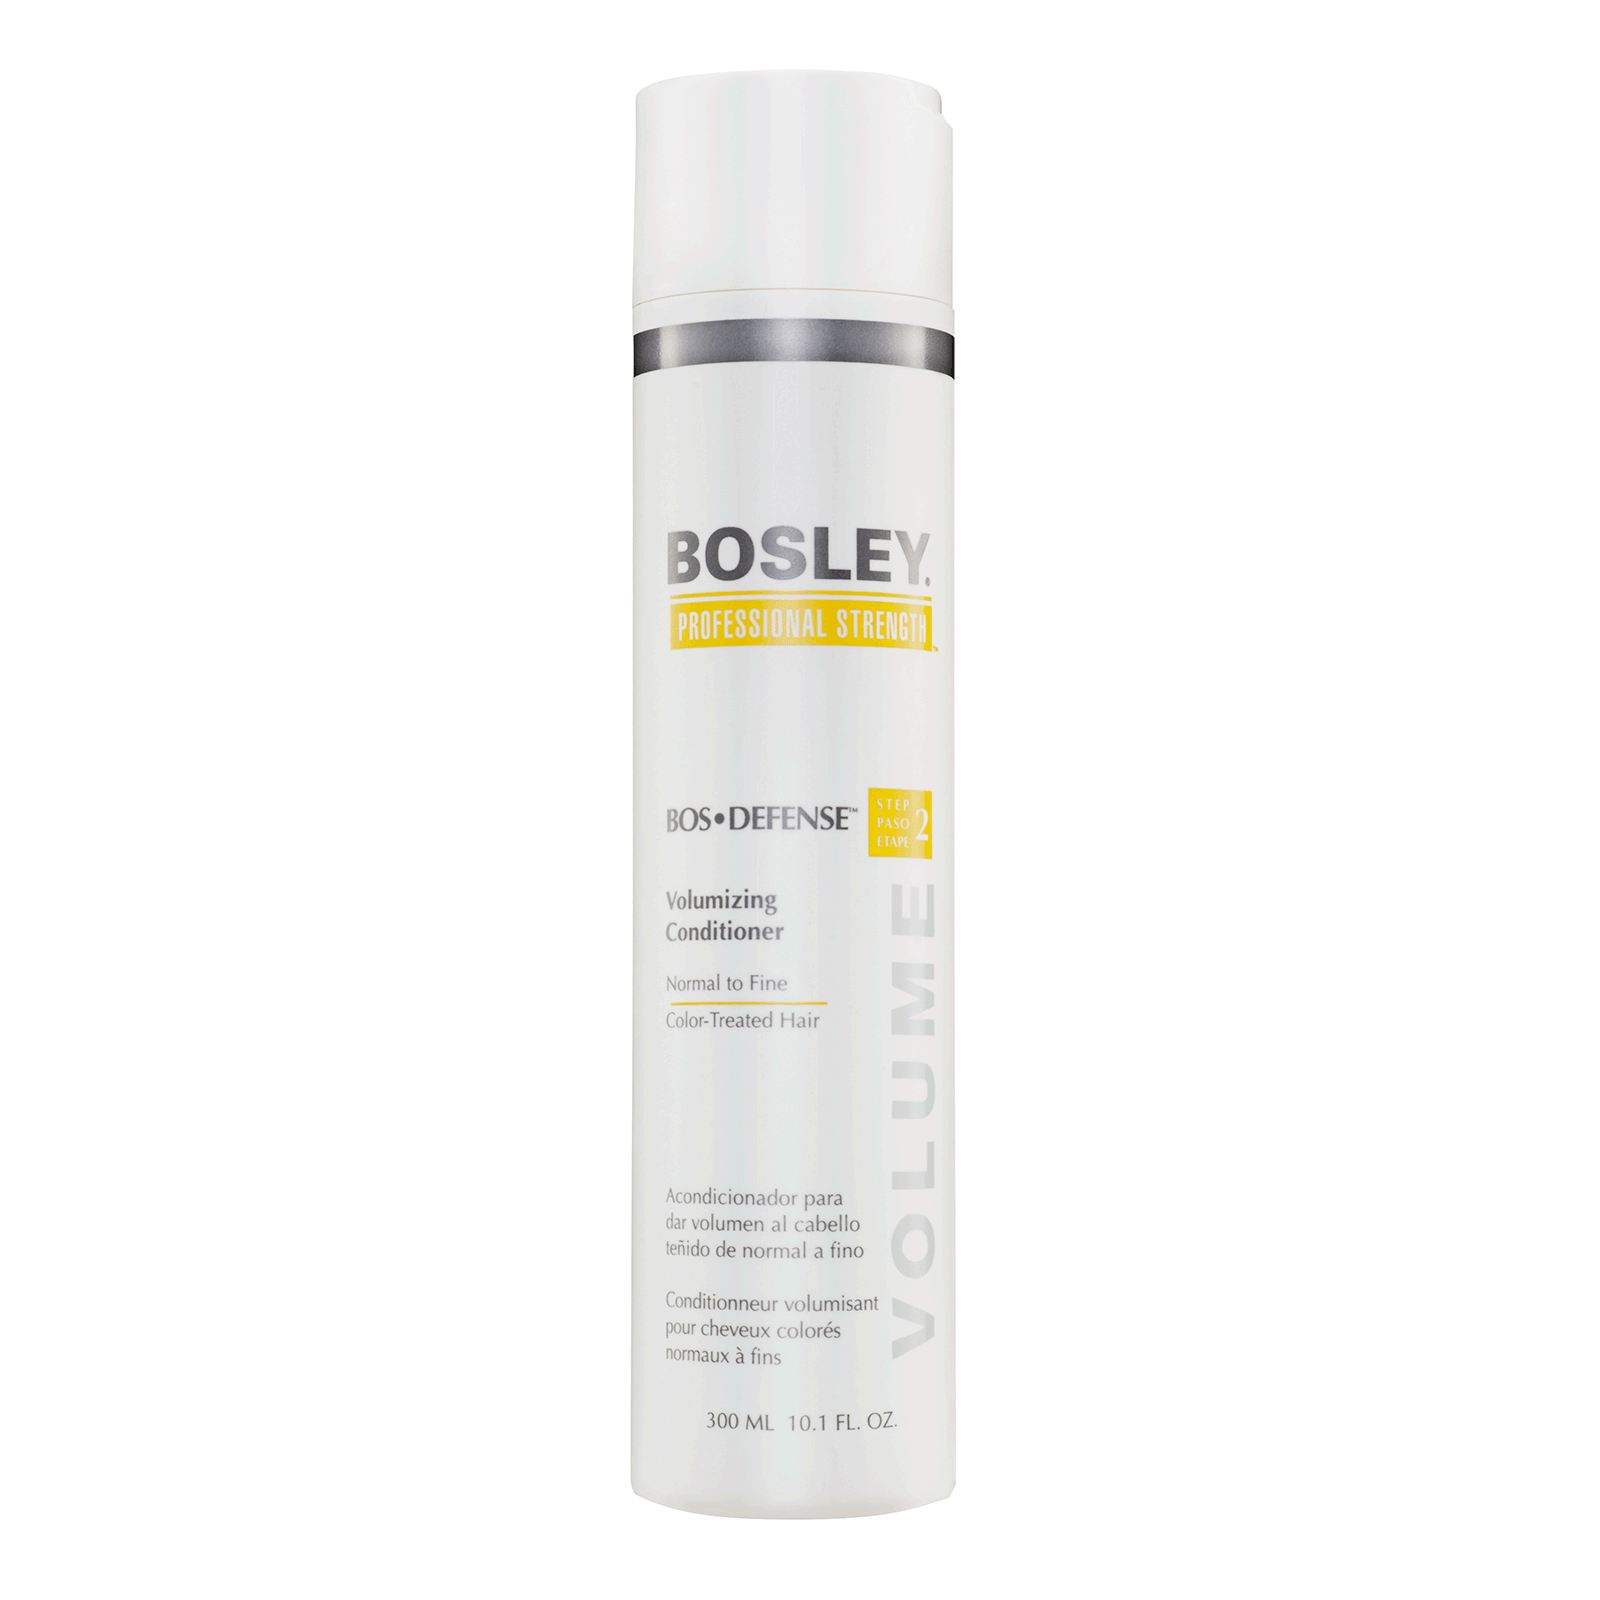 BosDefense Volumizing Conditioner for Color-Treated Hair